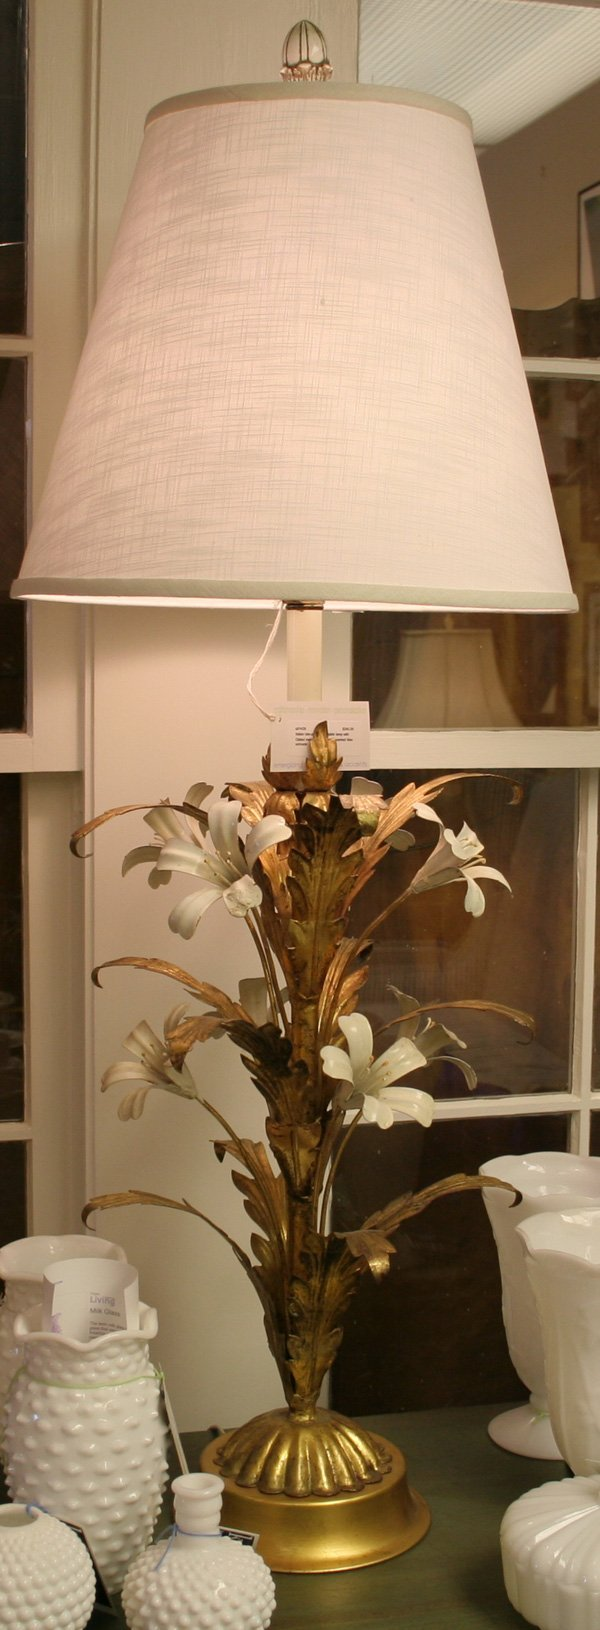 4: 4: Italian tole-painted Lily table lamp with Gilded